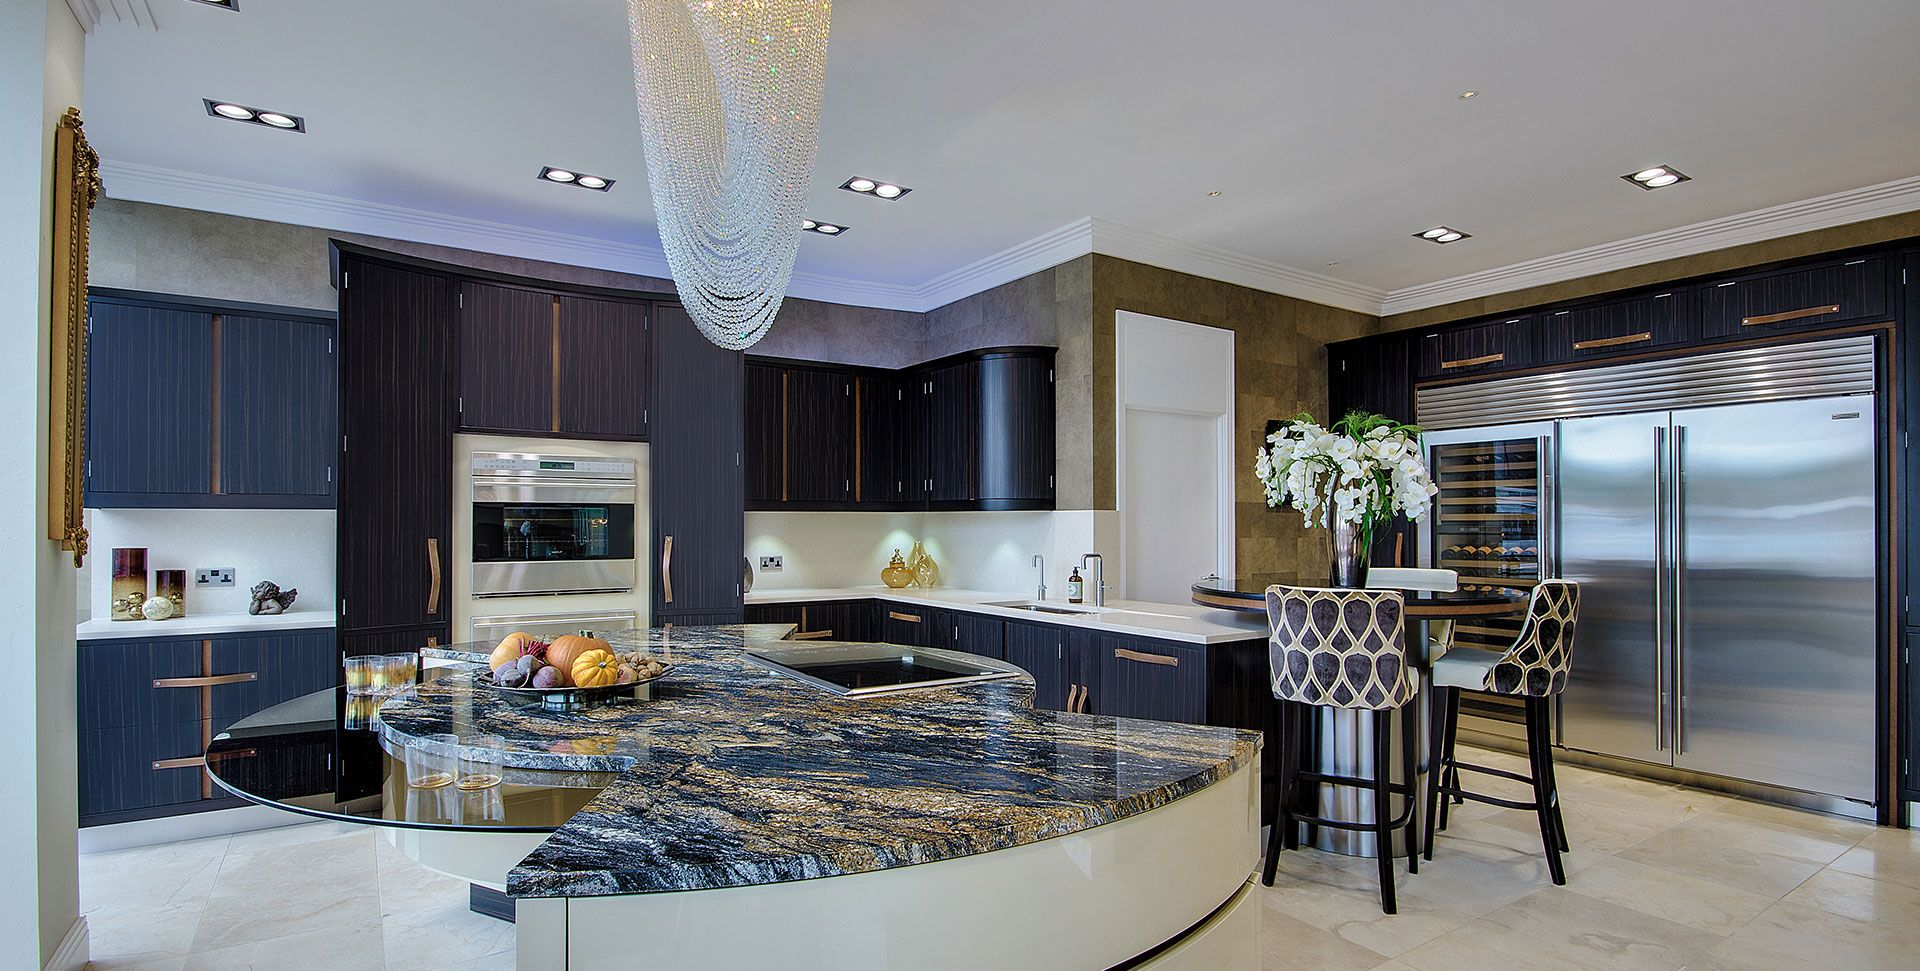 Rococco kitchen by extreme design sunningdale showroom for Extreme kitchen designs